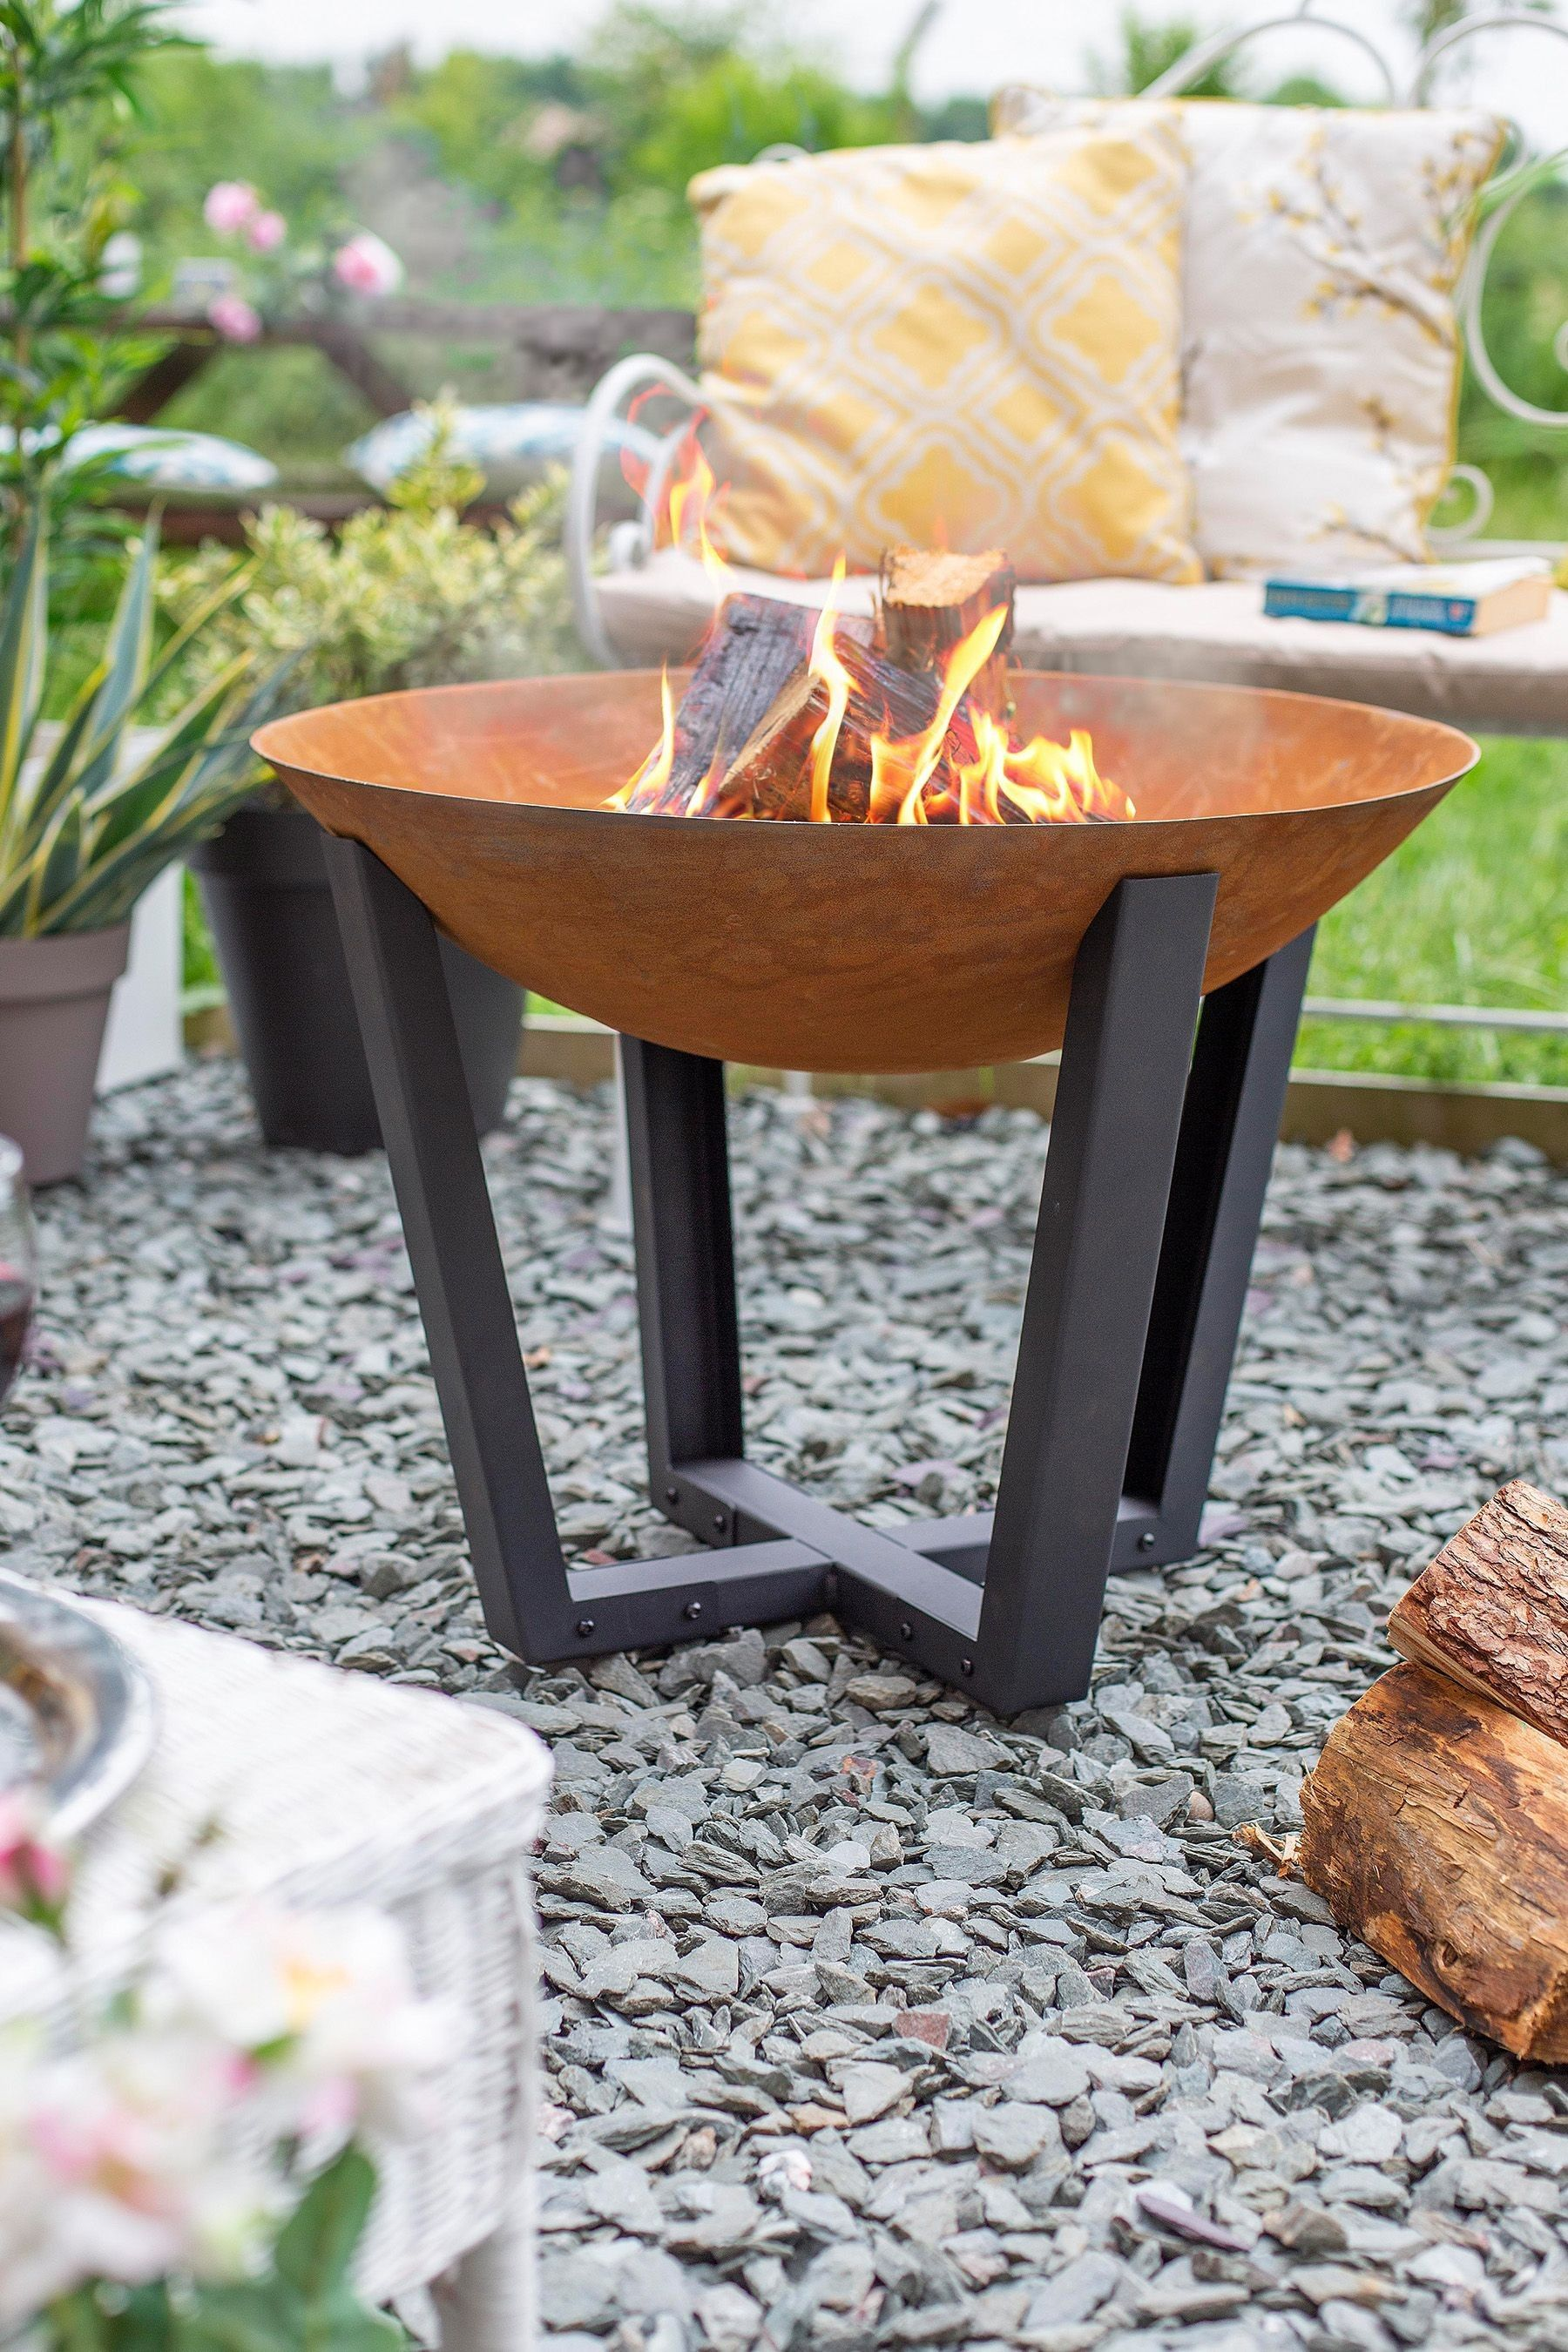 Icarus Fire Pit By La Hacienda Steel Fire Pit Fire Pit Outdoor Heating